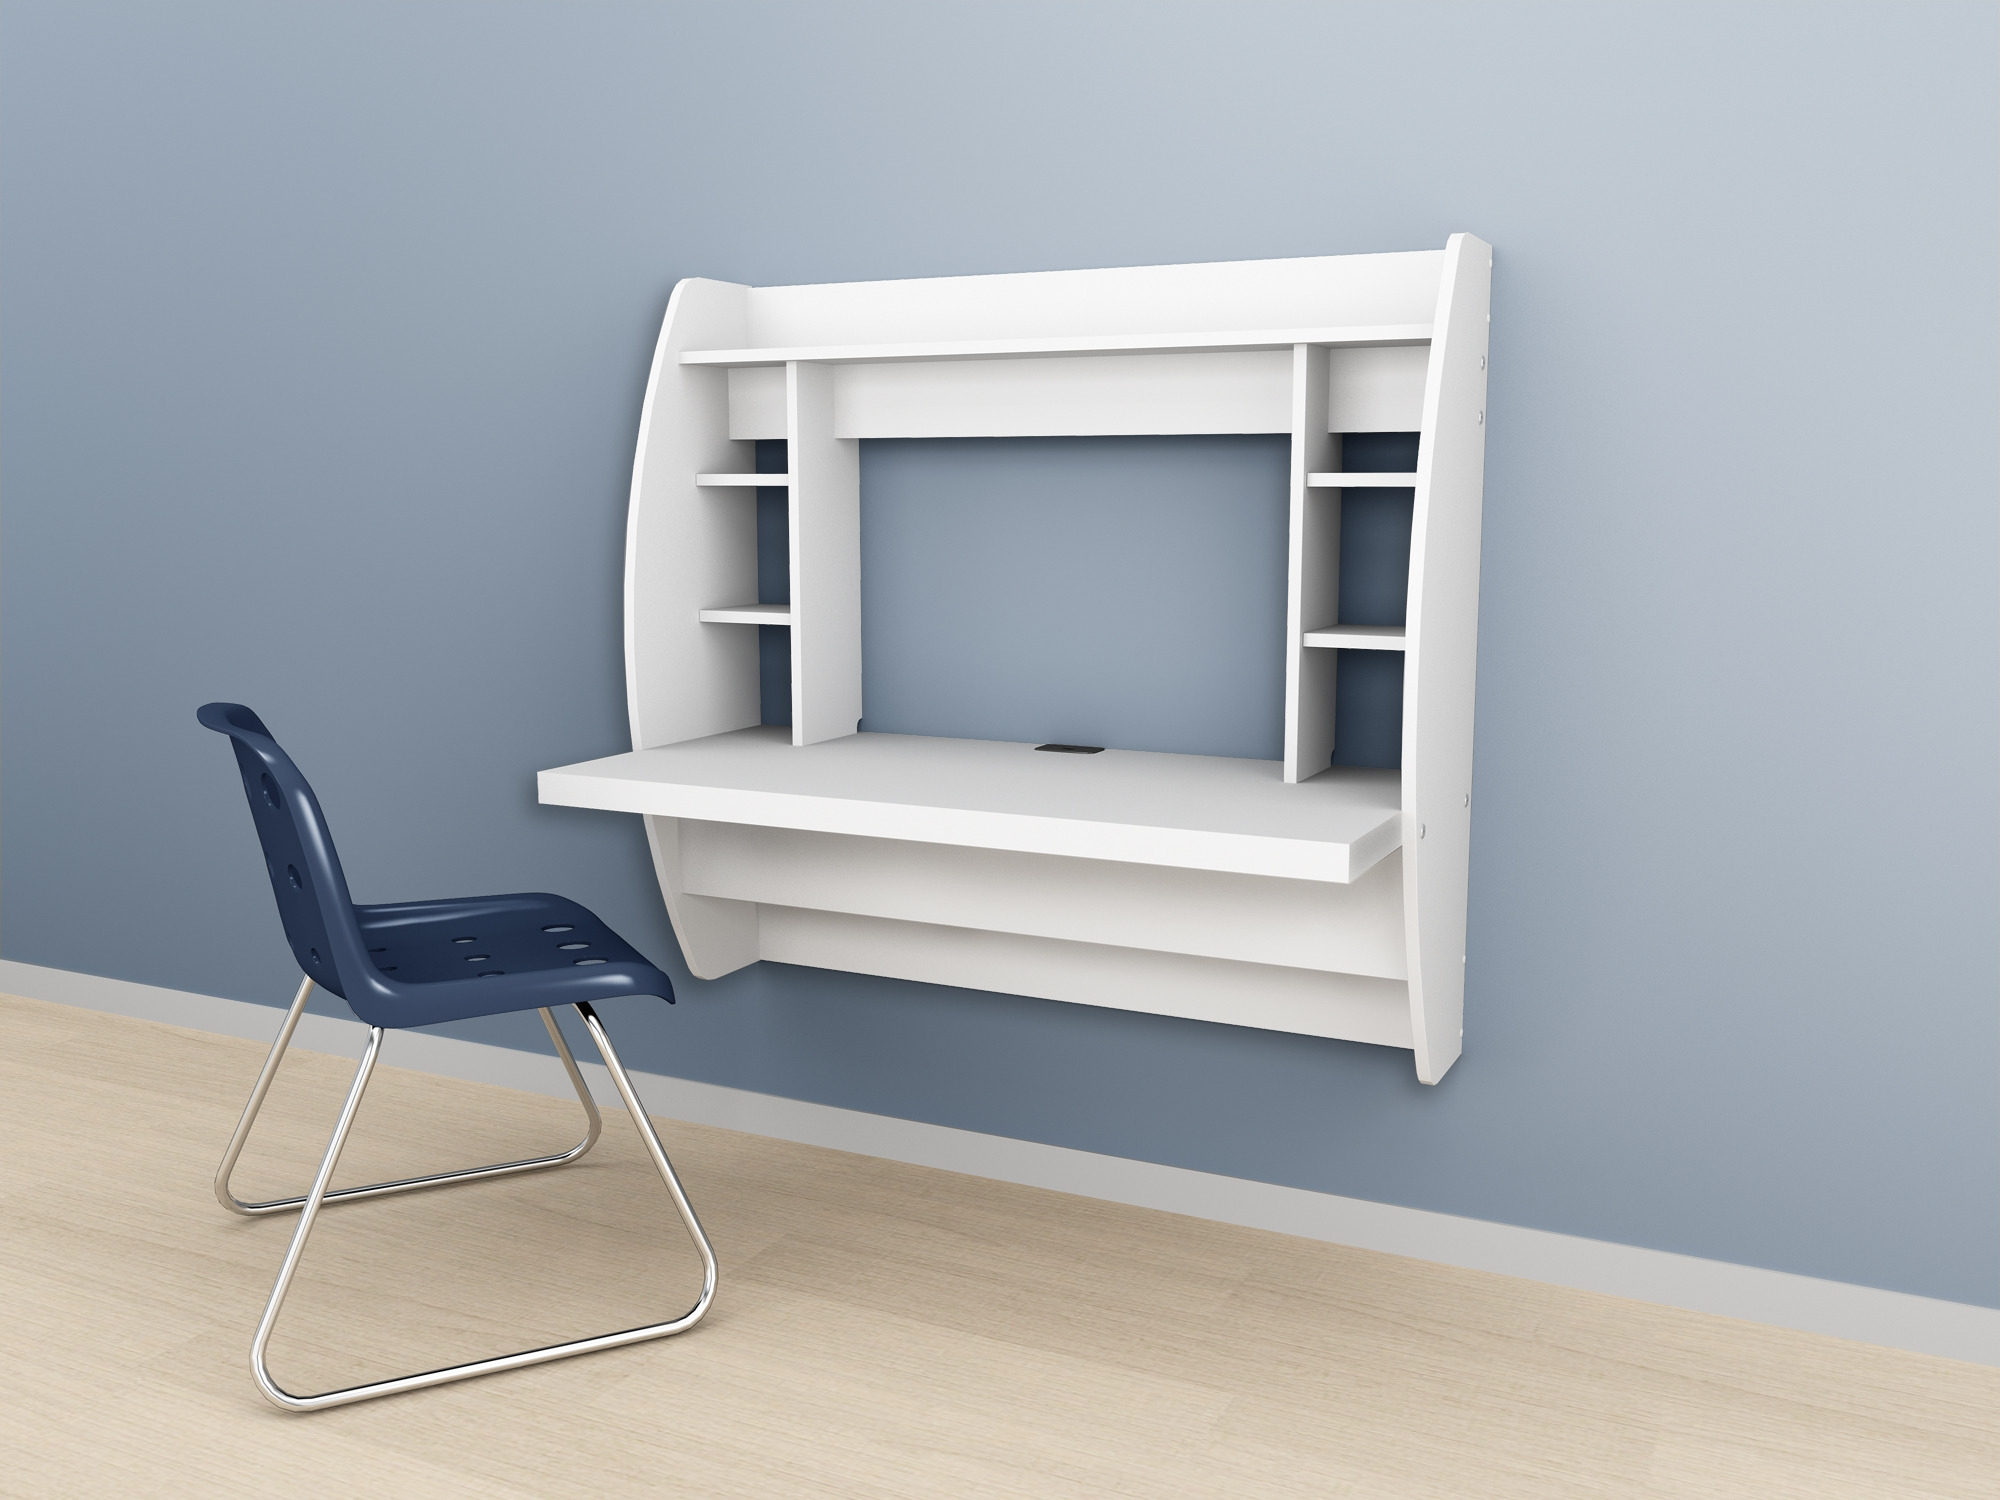 Computer Storage Cabinet Wall Mount